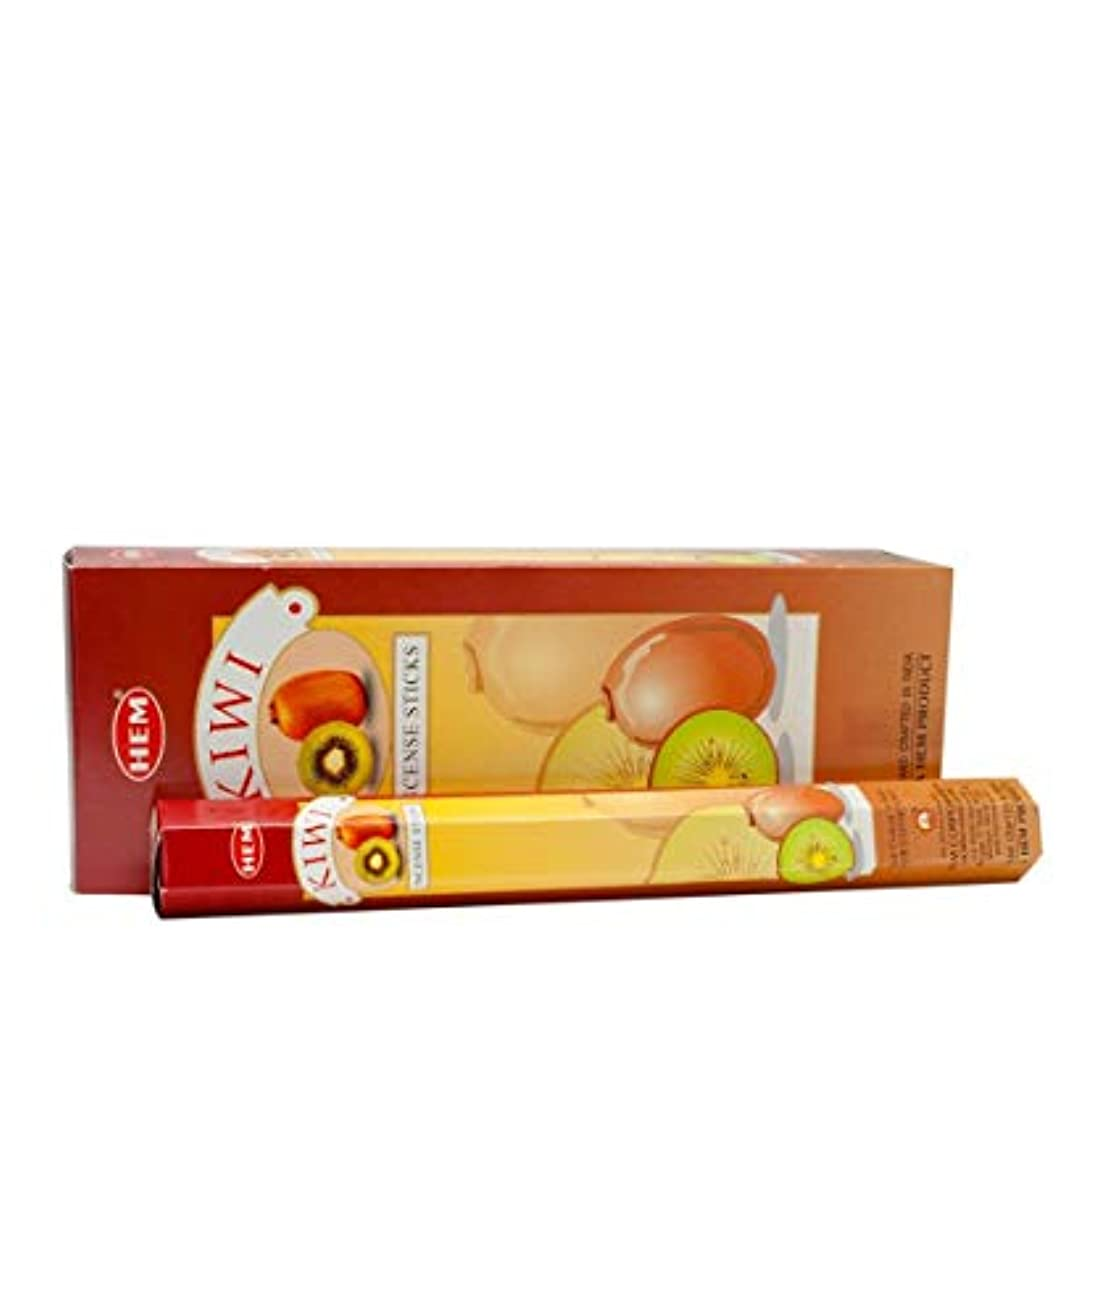 サバント失礼なおばさんHem Kiwi Incense Sticks (9.3 cm X 6.0 cm X 25.5cm, Black)